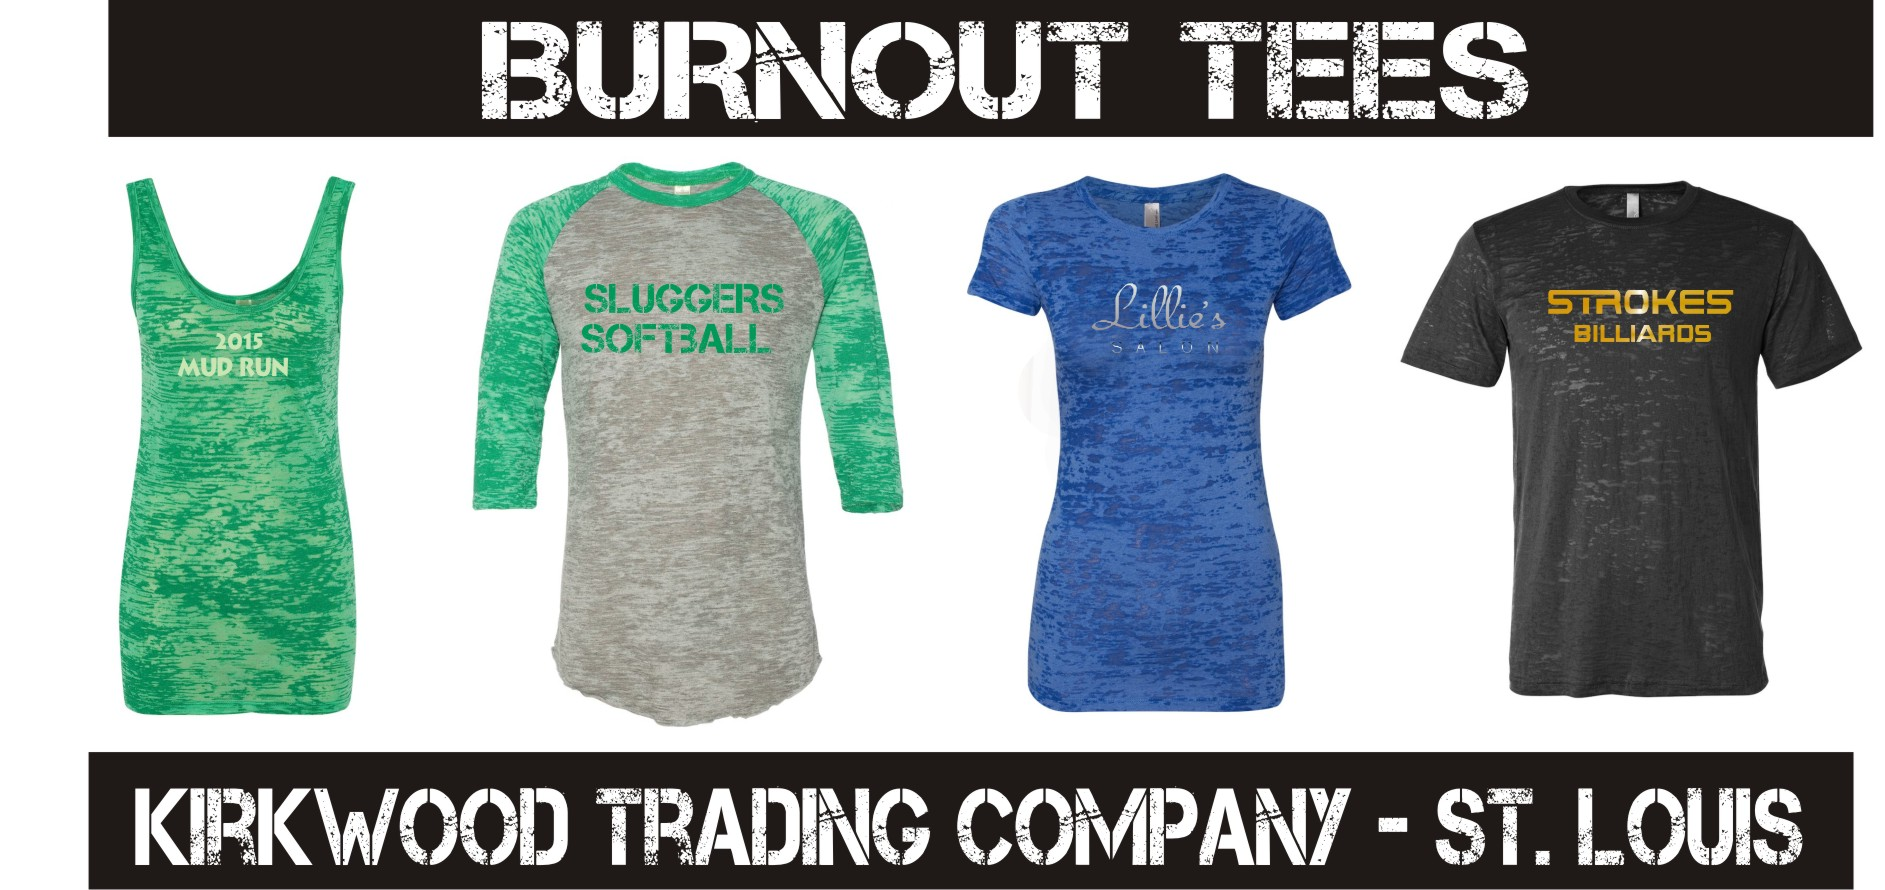 Custom Printed Burnout T-shirts - Kirkwood Trading Co